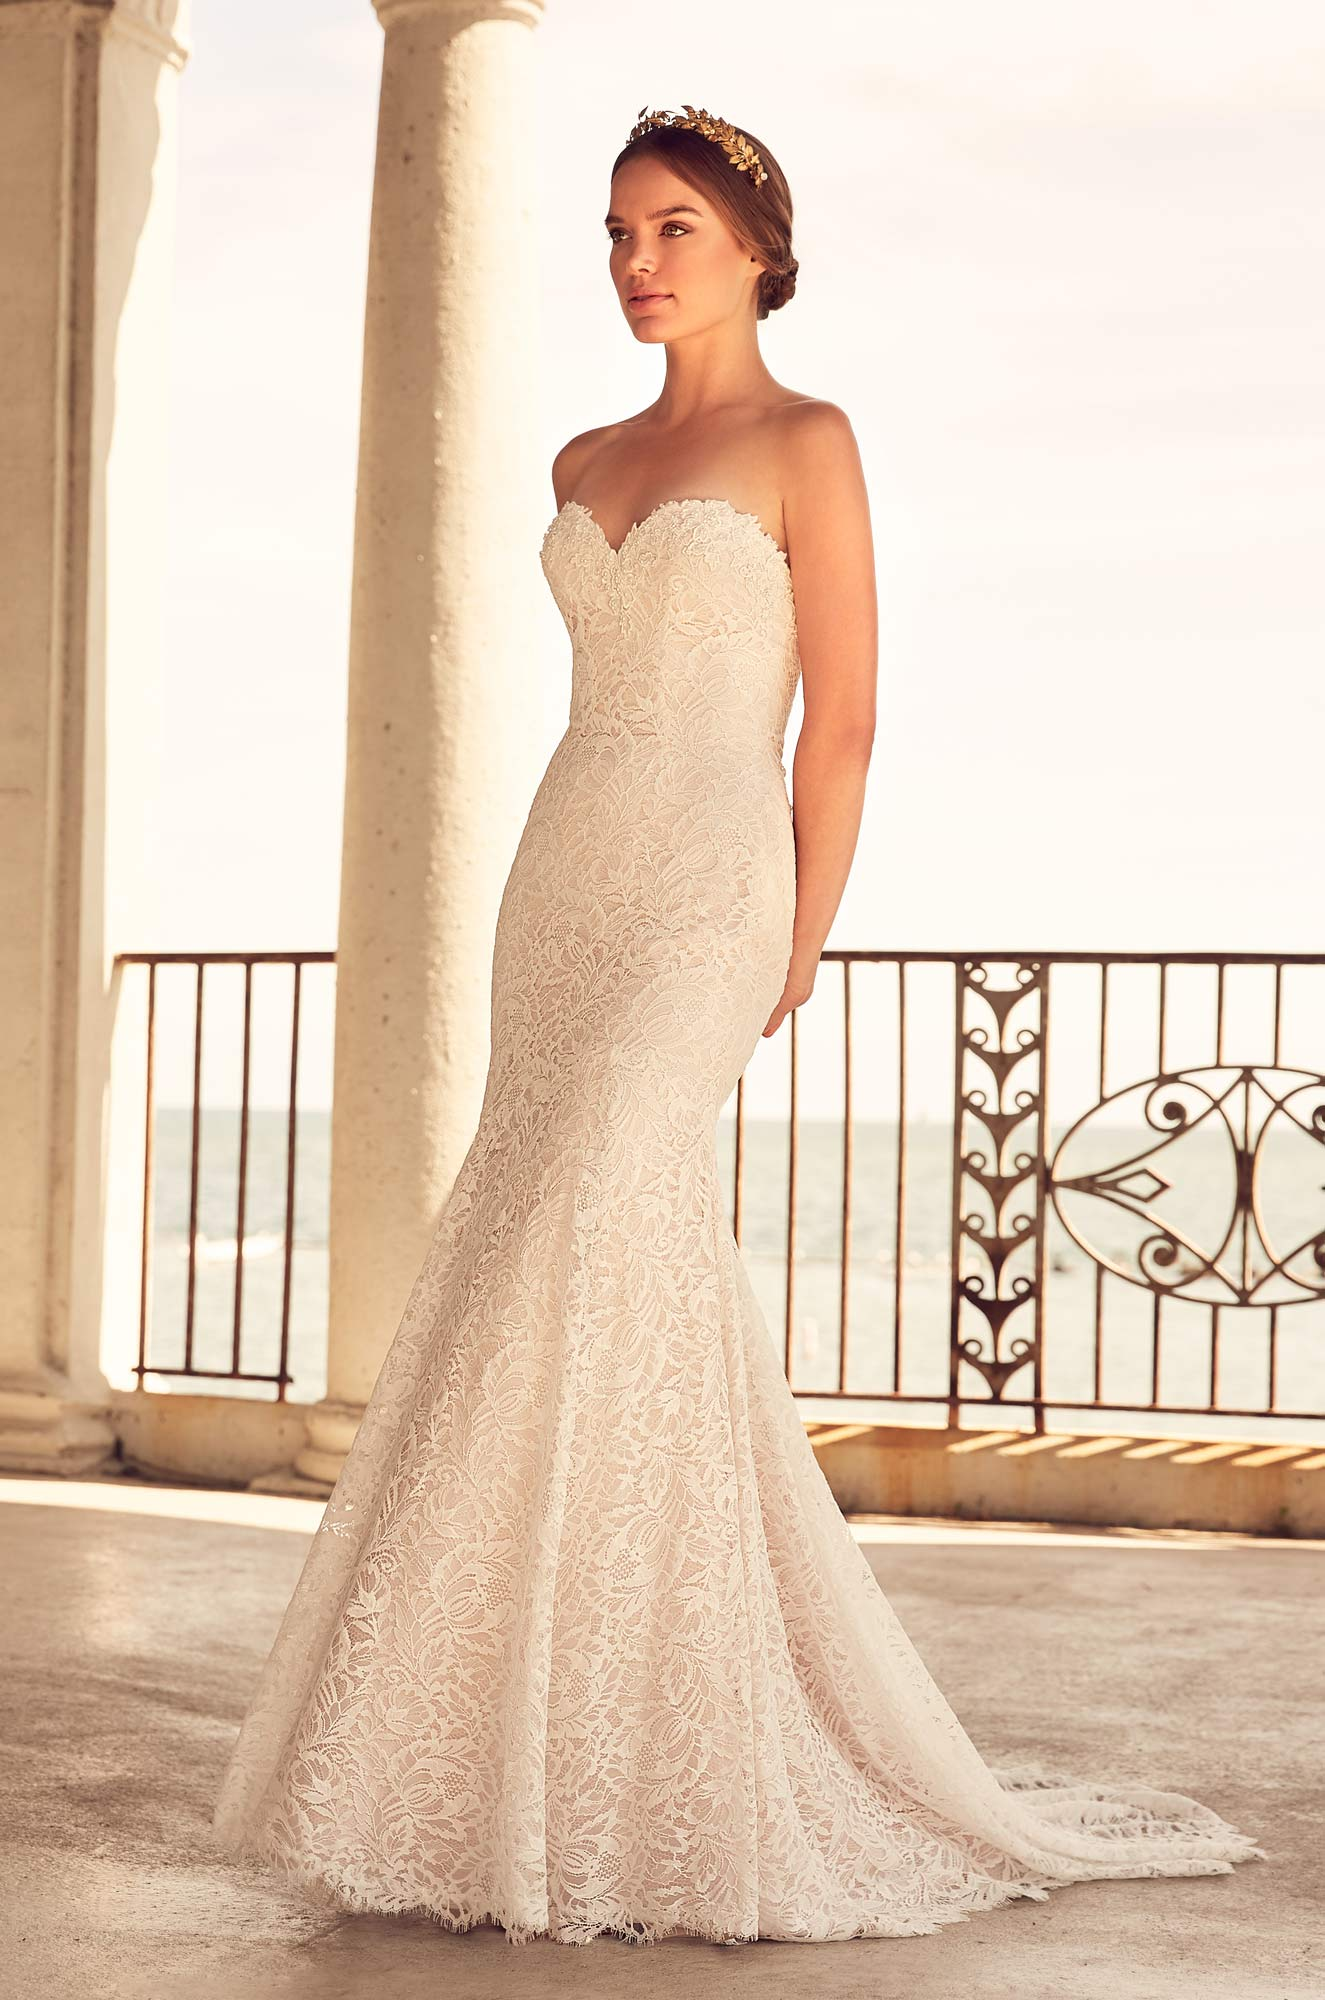 Sweetheart Neckline Beaded Lace Fit And Flare Wedding Dress